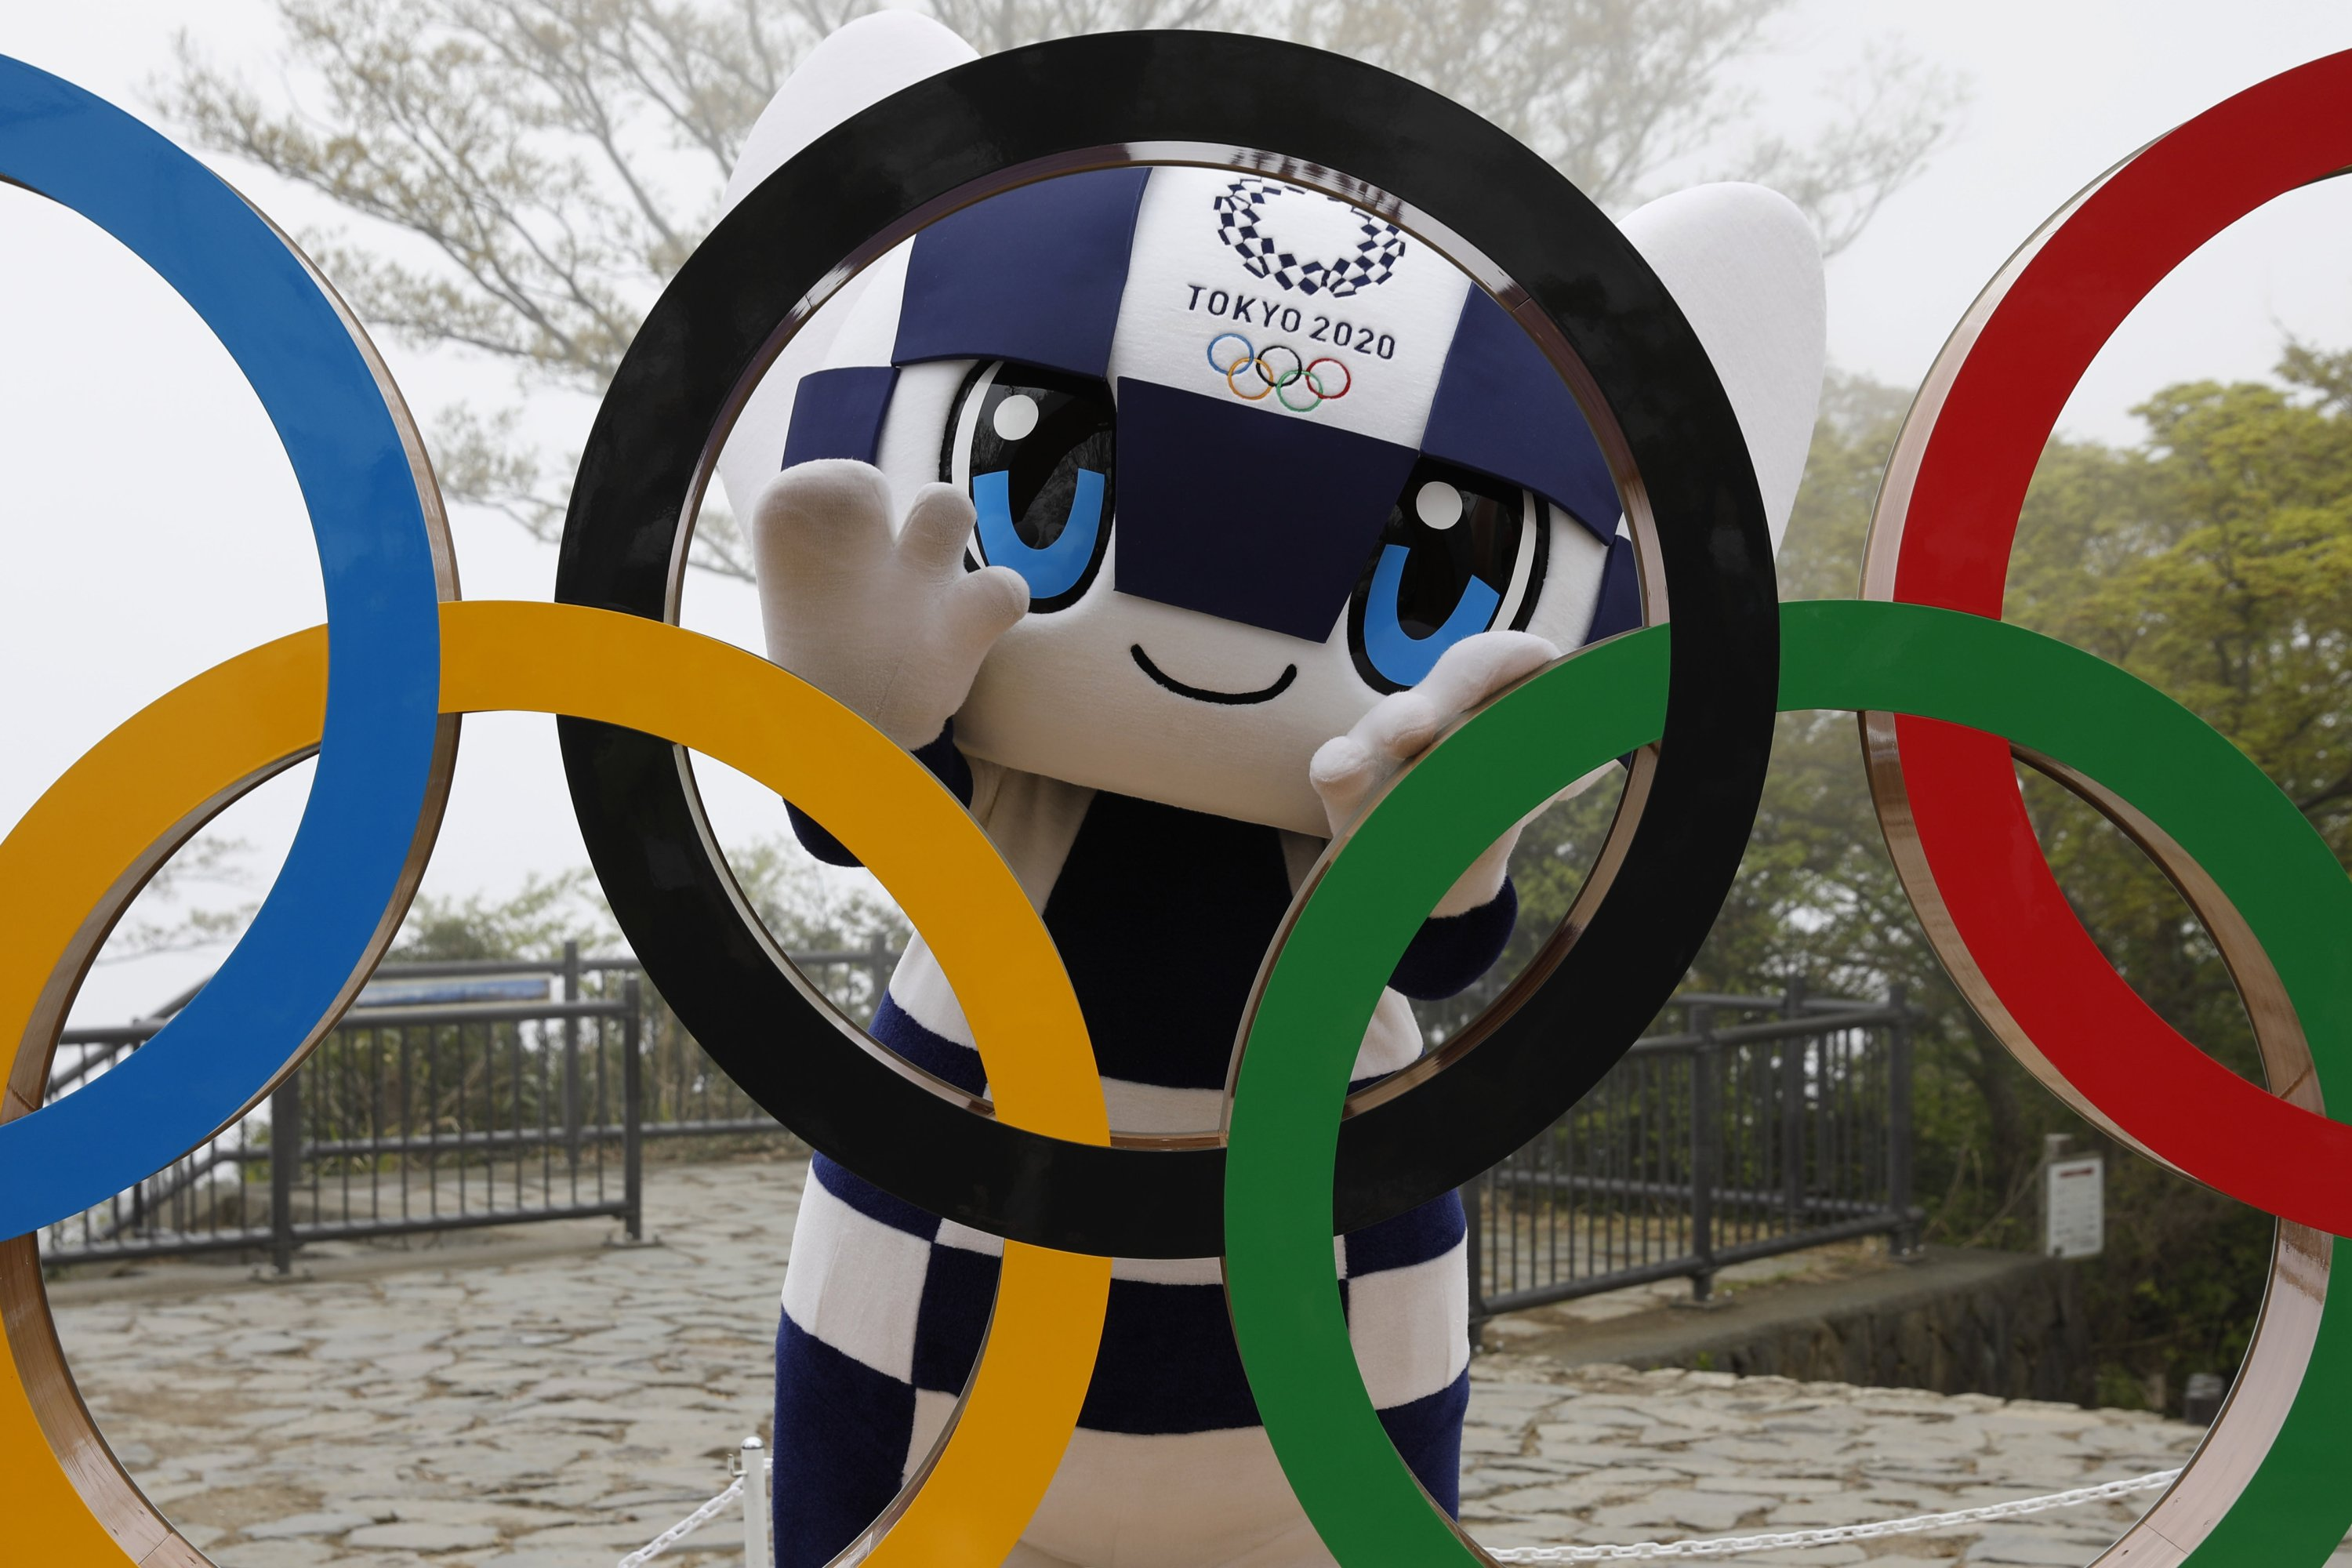 Tokyo 2020 Olympic Games mascot Miraitowa poses with a display of Olympic Symbol after an unveiling ceremony of the symbol on Mt. Takao in Hachioji, west of Tokyo, April 14, 2021, to mark 100 days before the start of the Olympic Games. (AP Photo)